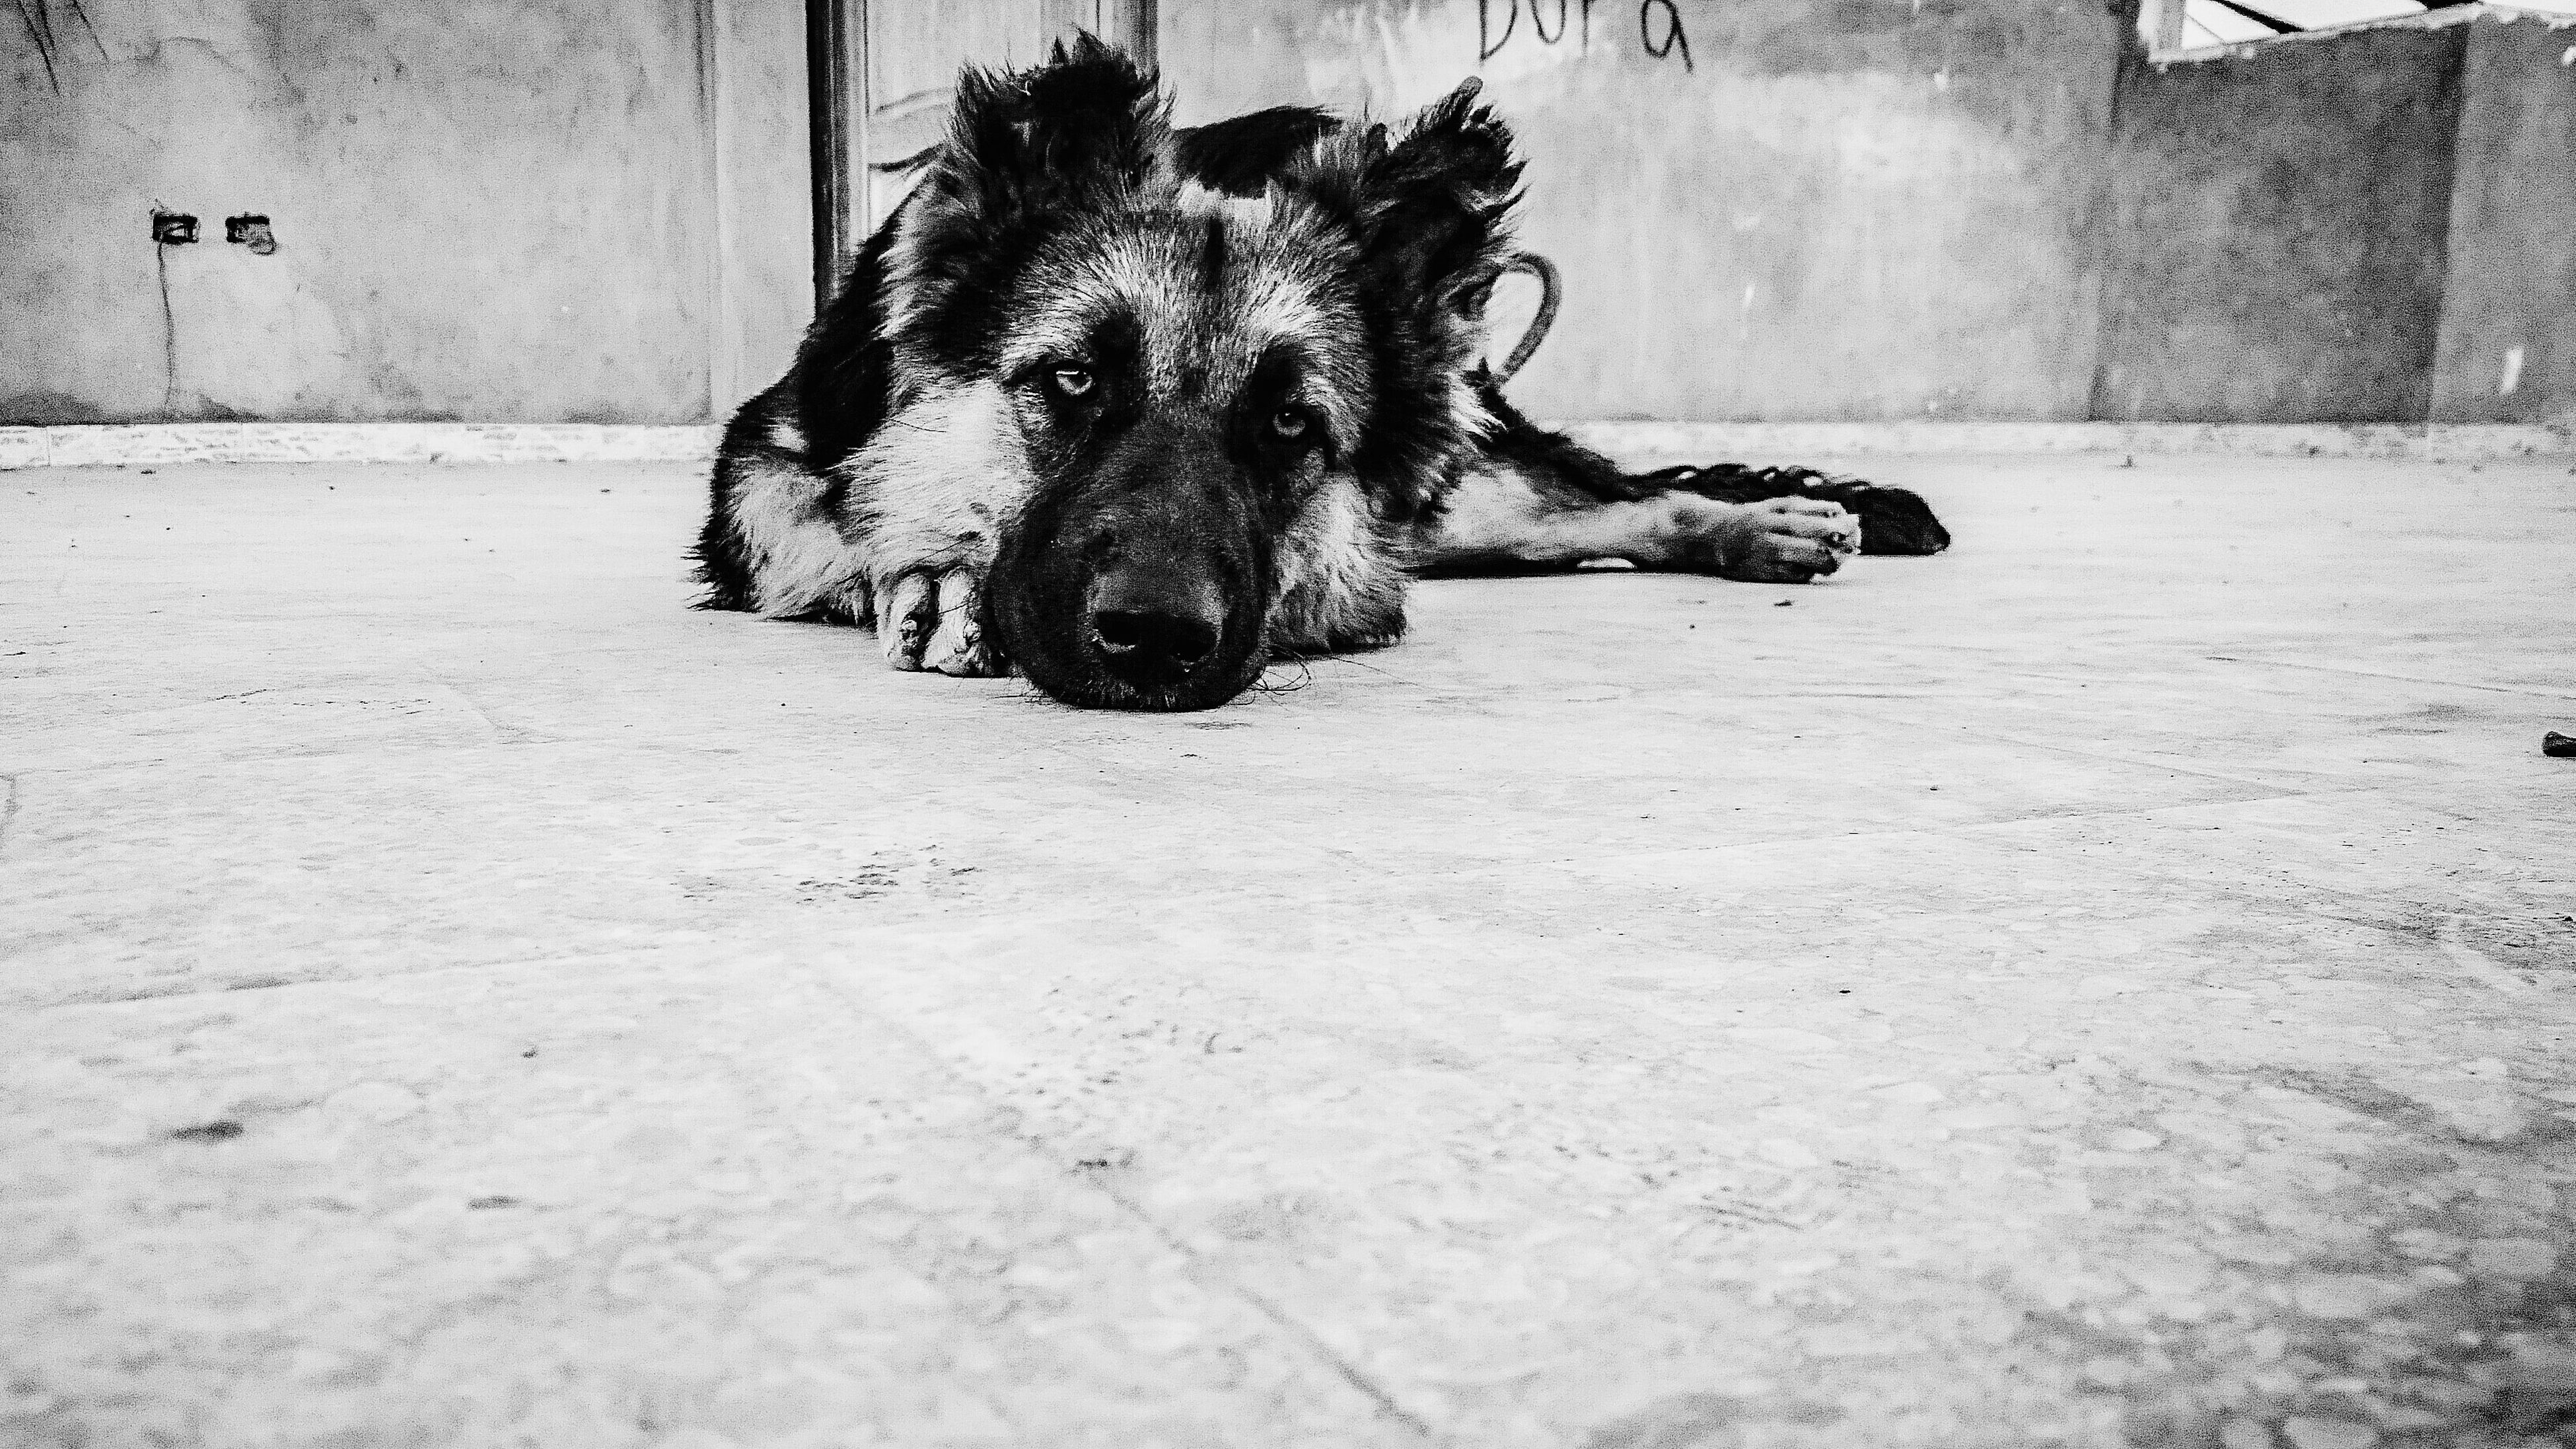 animal themes, mammal, domestic animals, animal head, one animal, no people, outdoors, pets, day, close-up